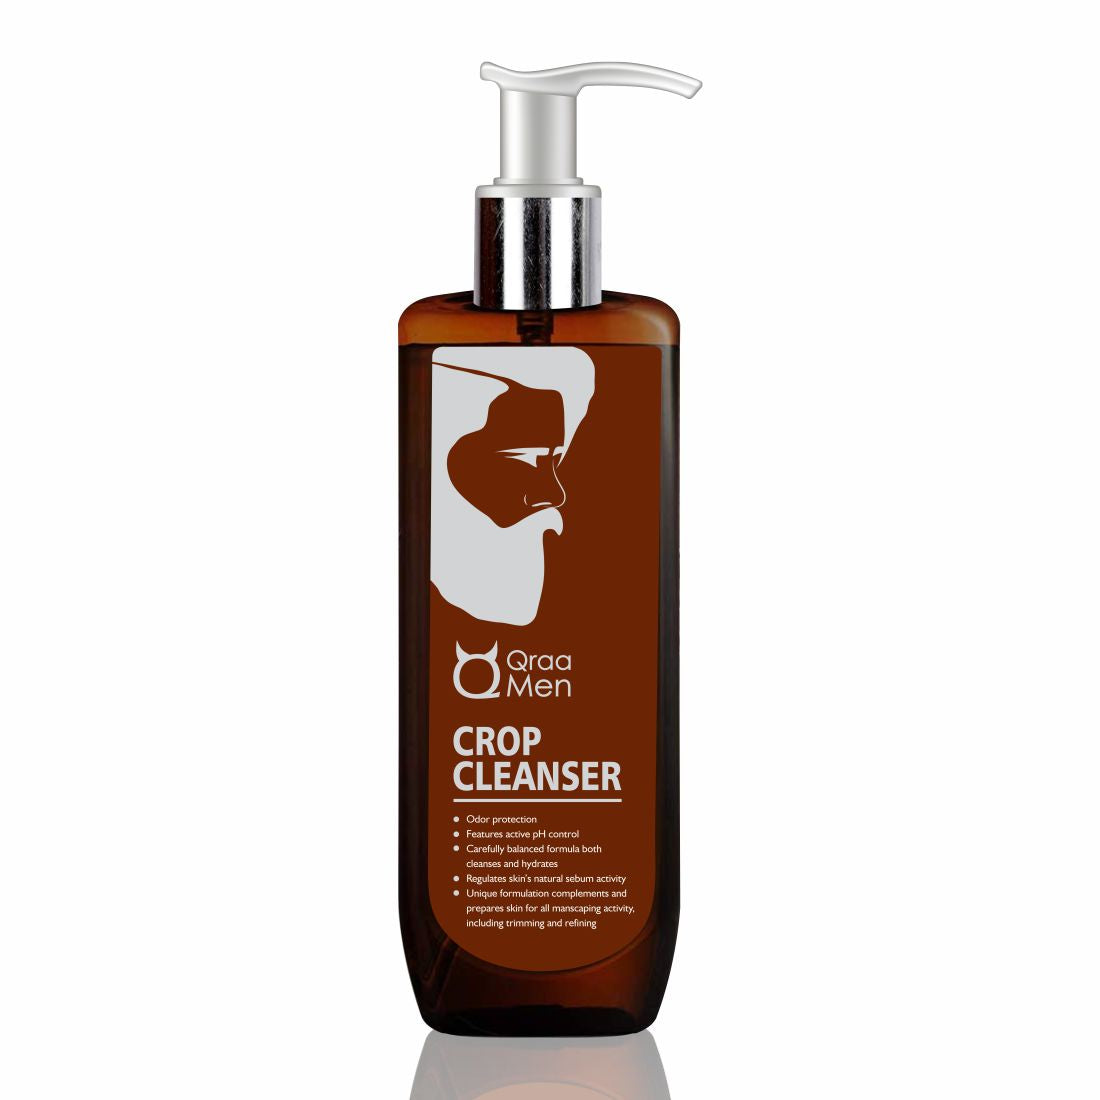 Crop Cleanser- Hygiene Wash for Men with Tea Tree Oil